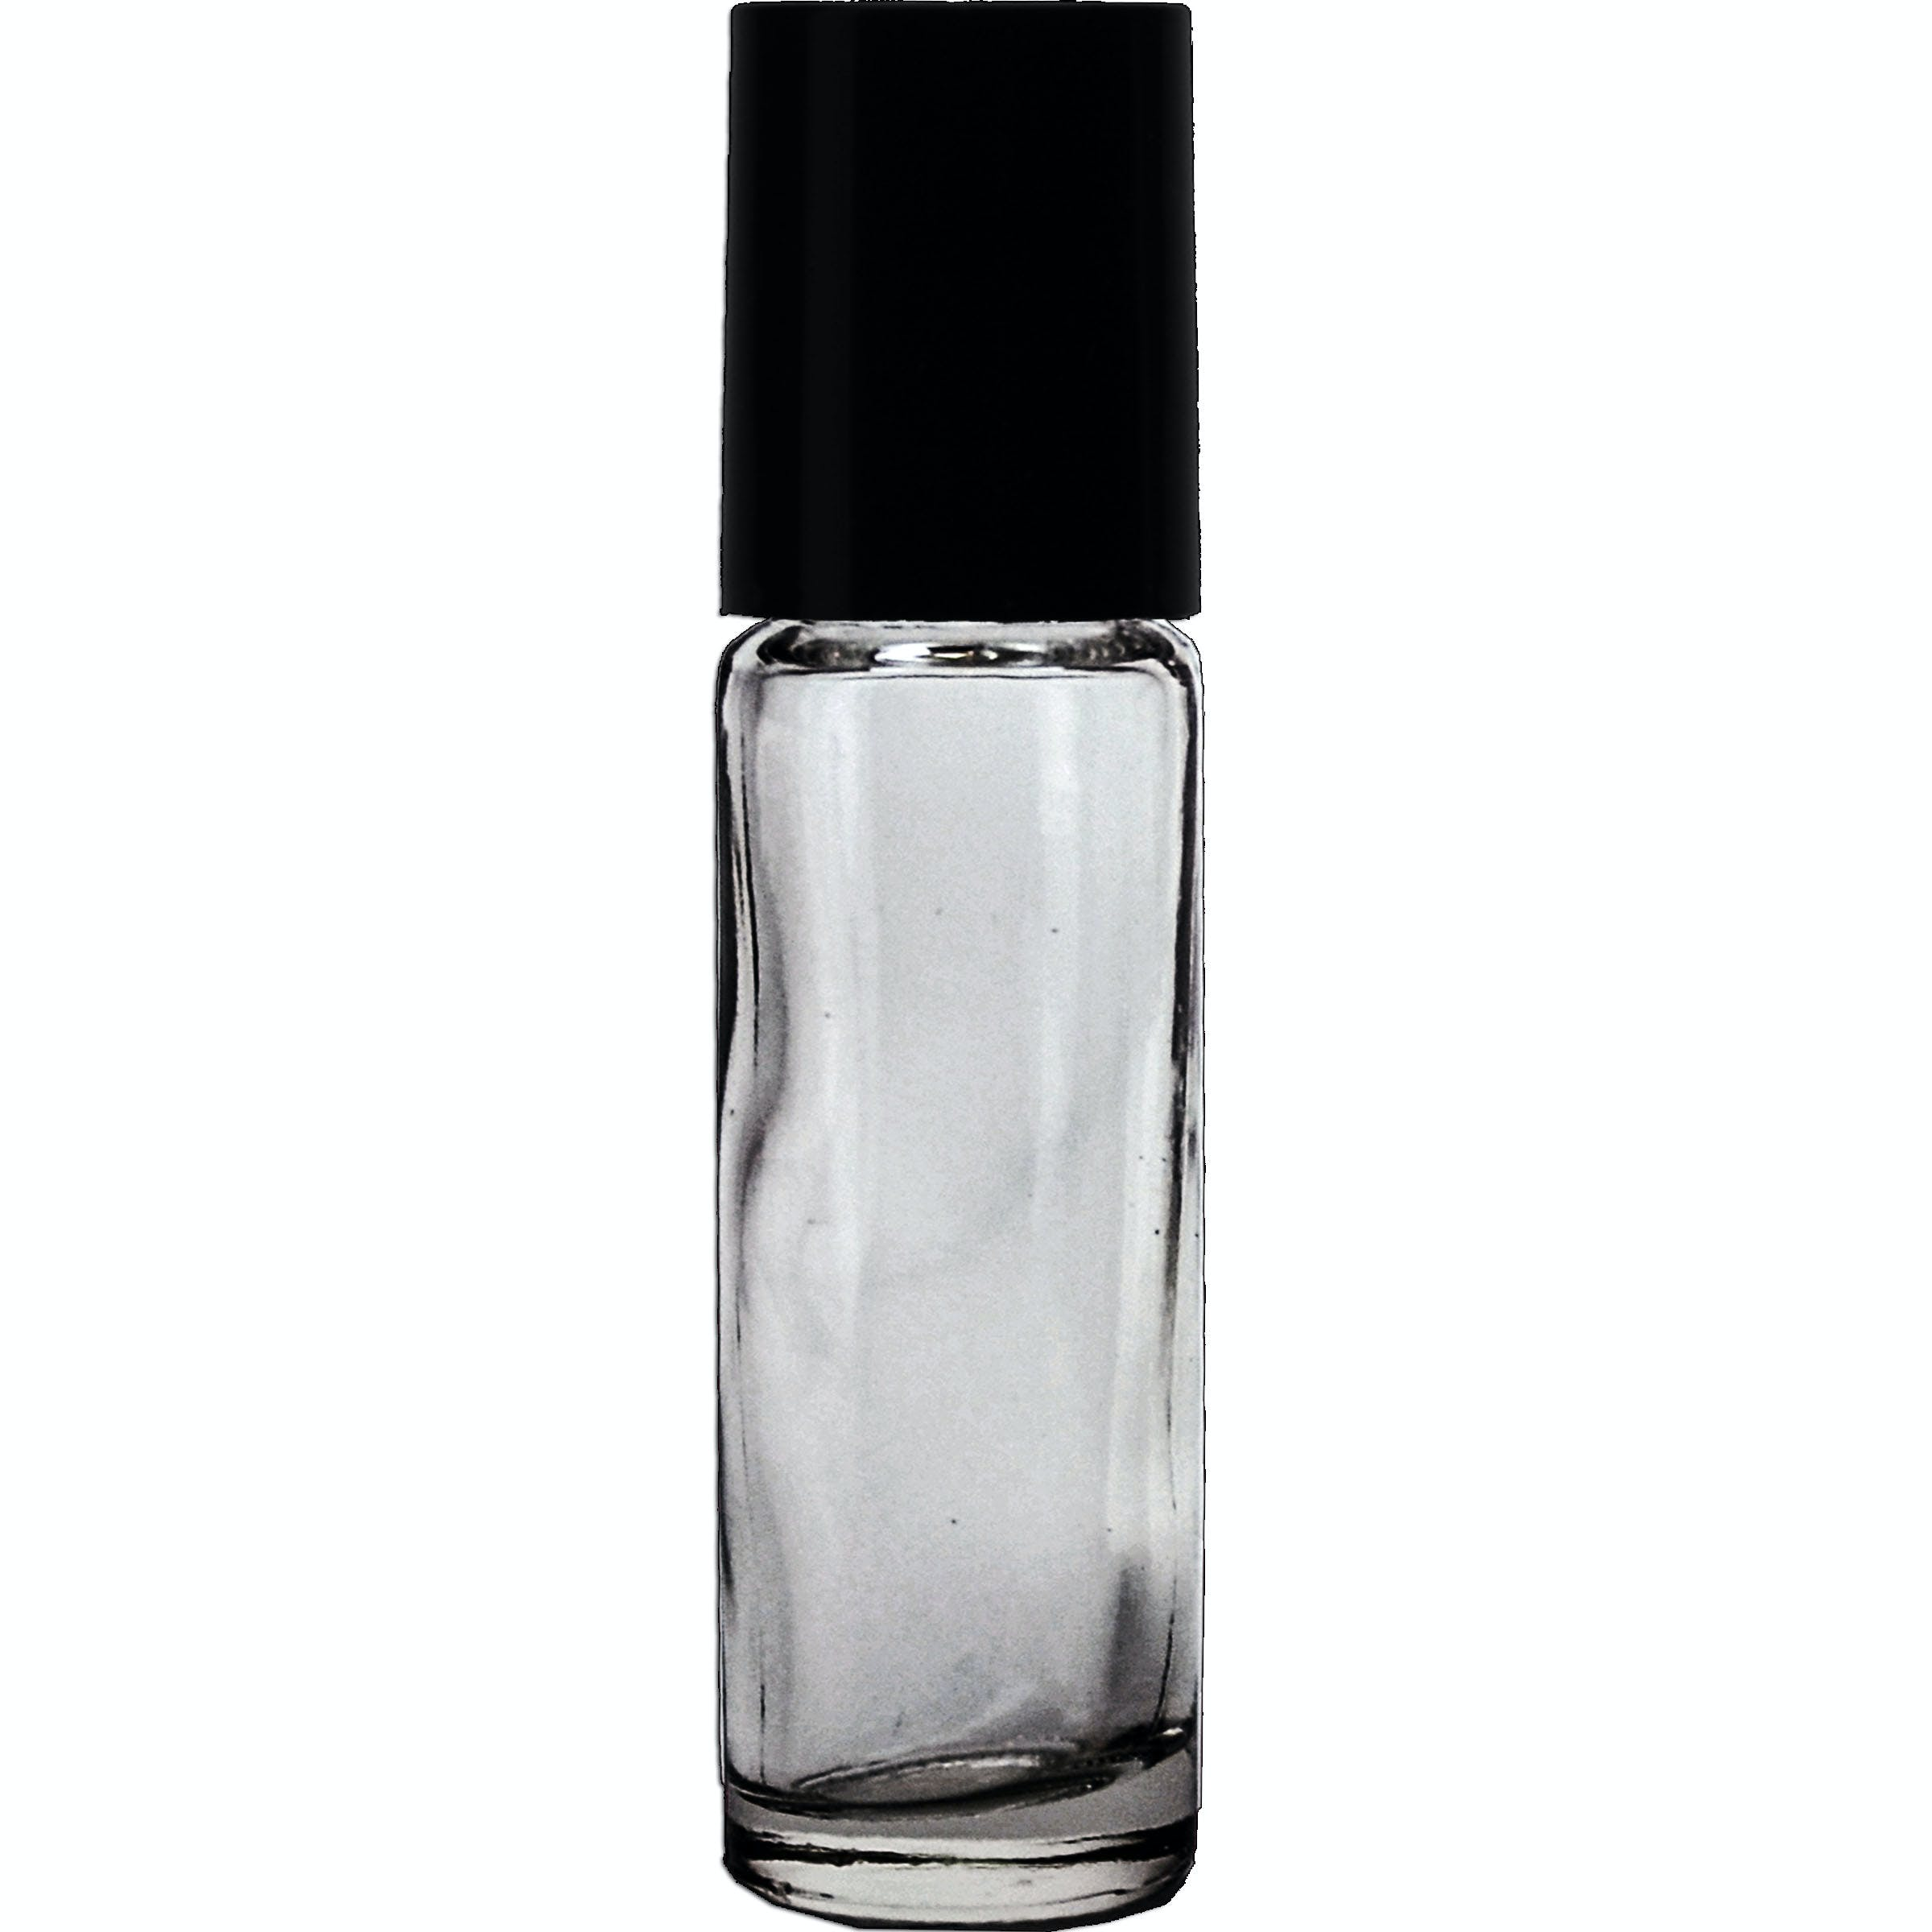 10ml Roll-on with black cap  Glass bottle sold by Glass Bottle Outlet